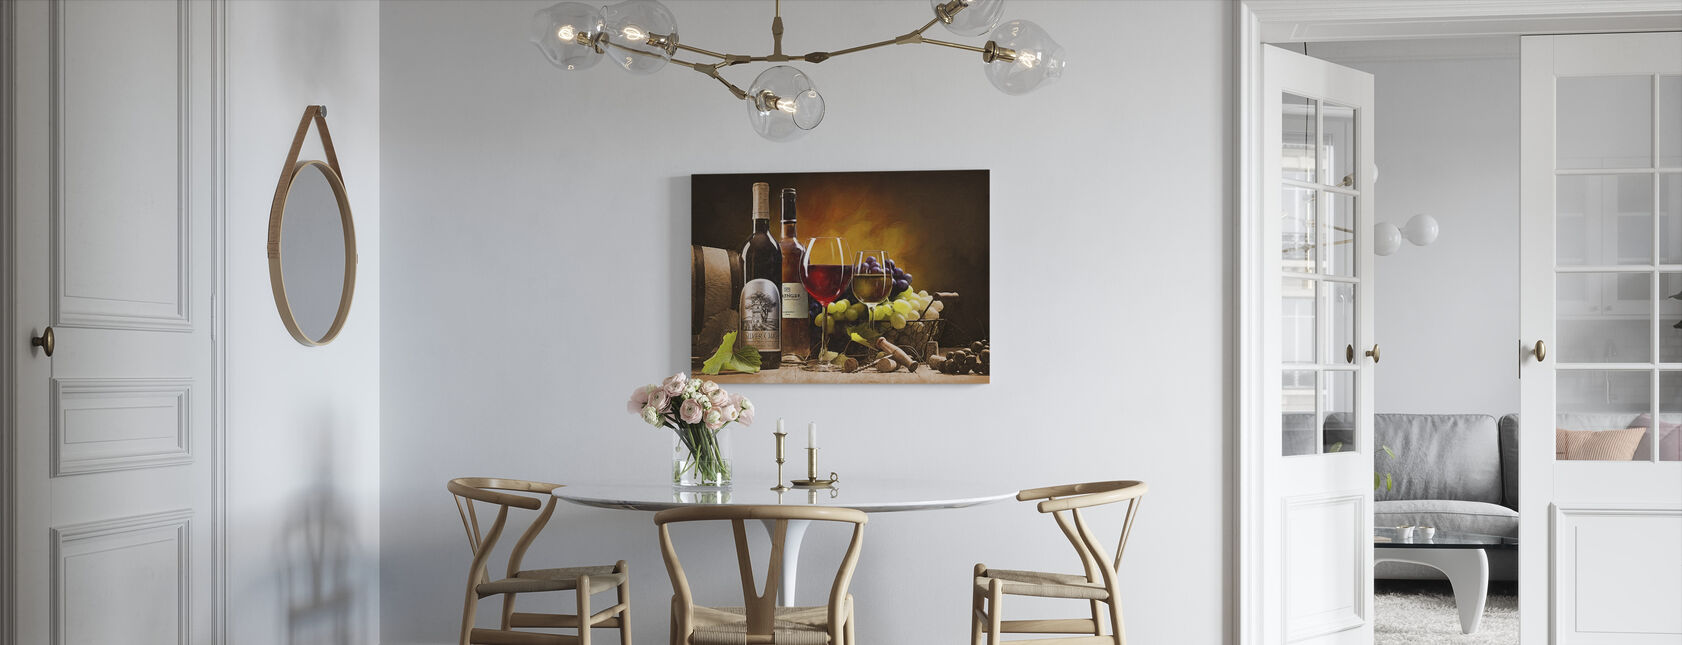 A Taste of Napa Valley - Canvas print - Kitchen